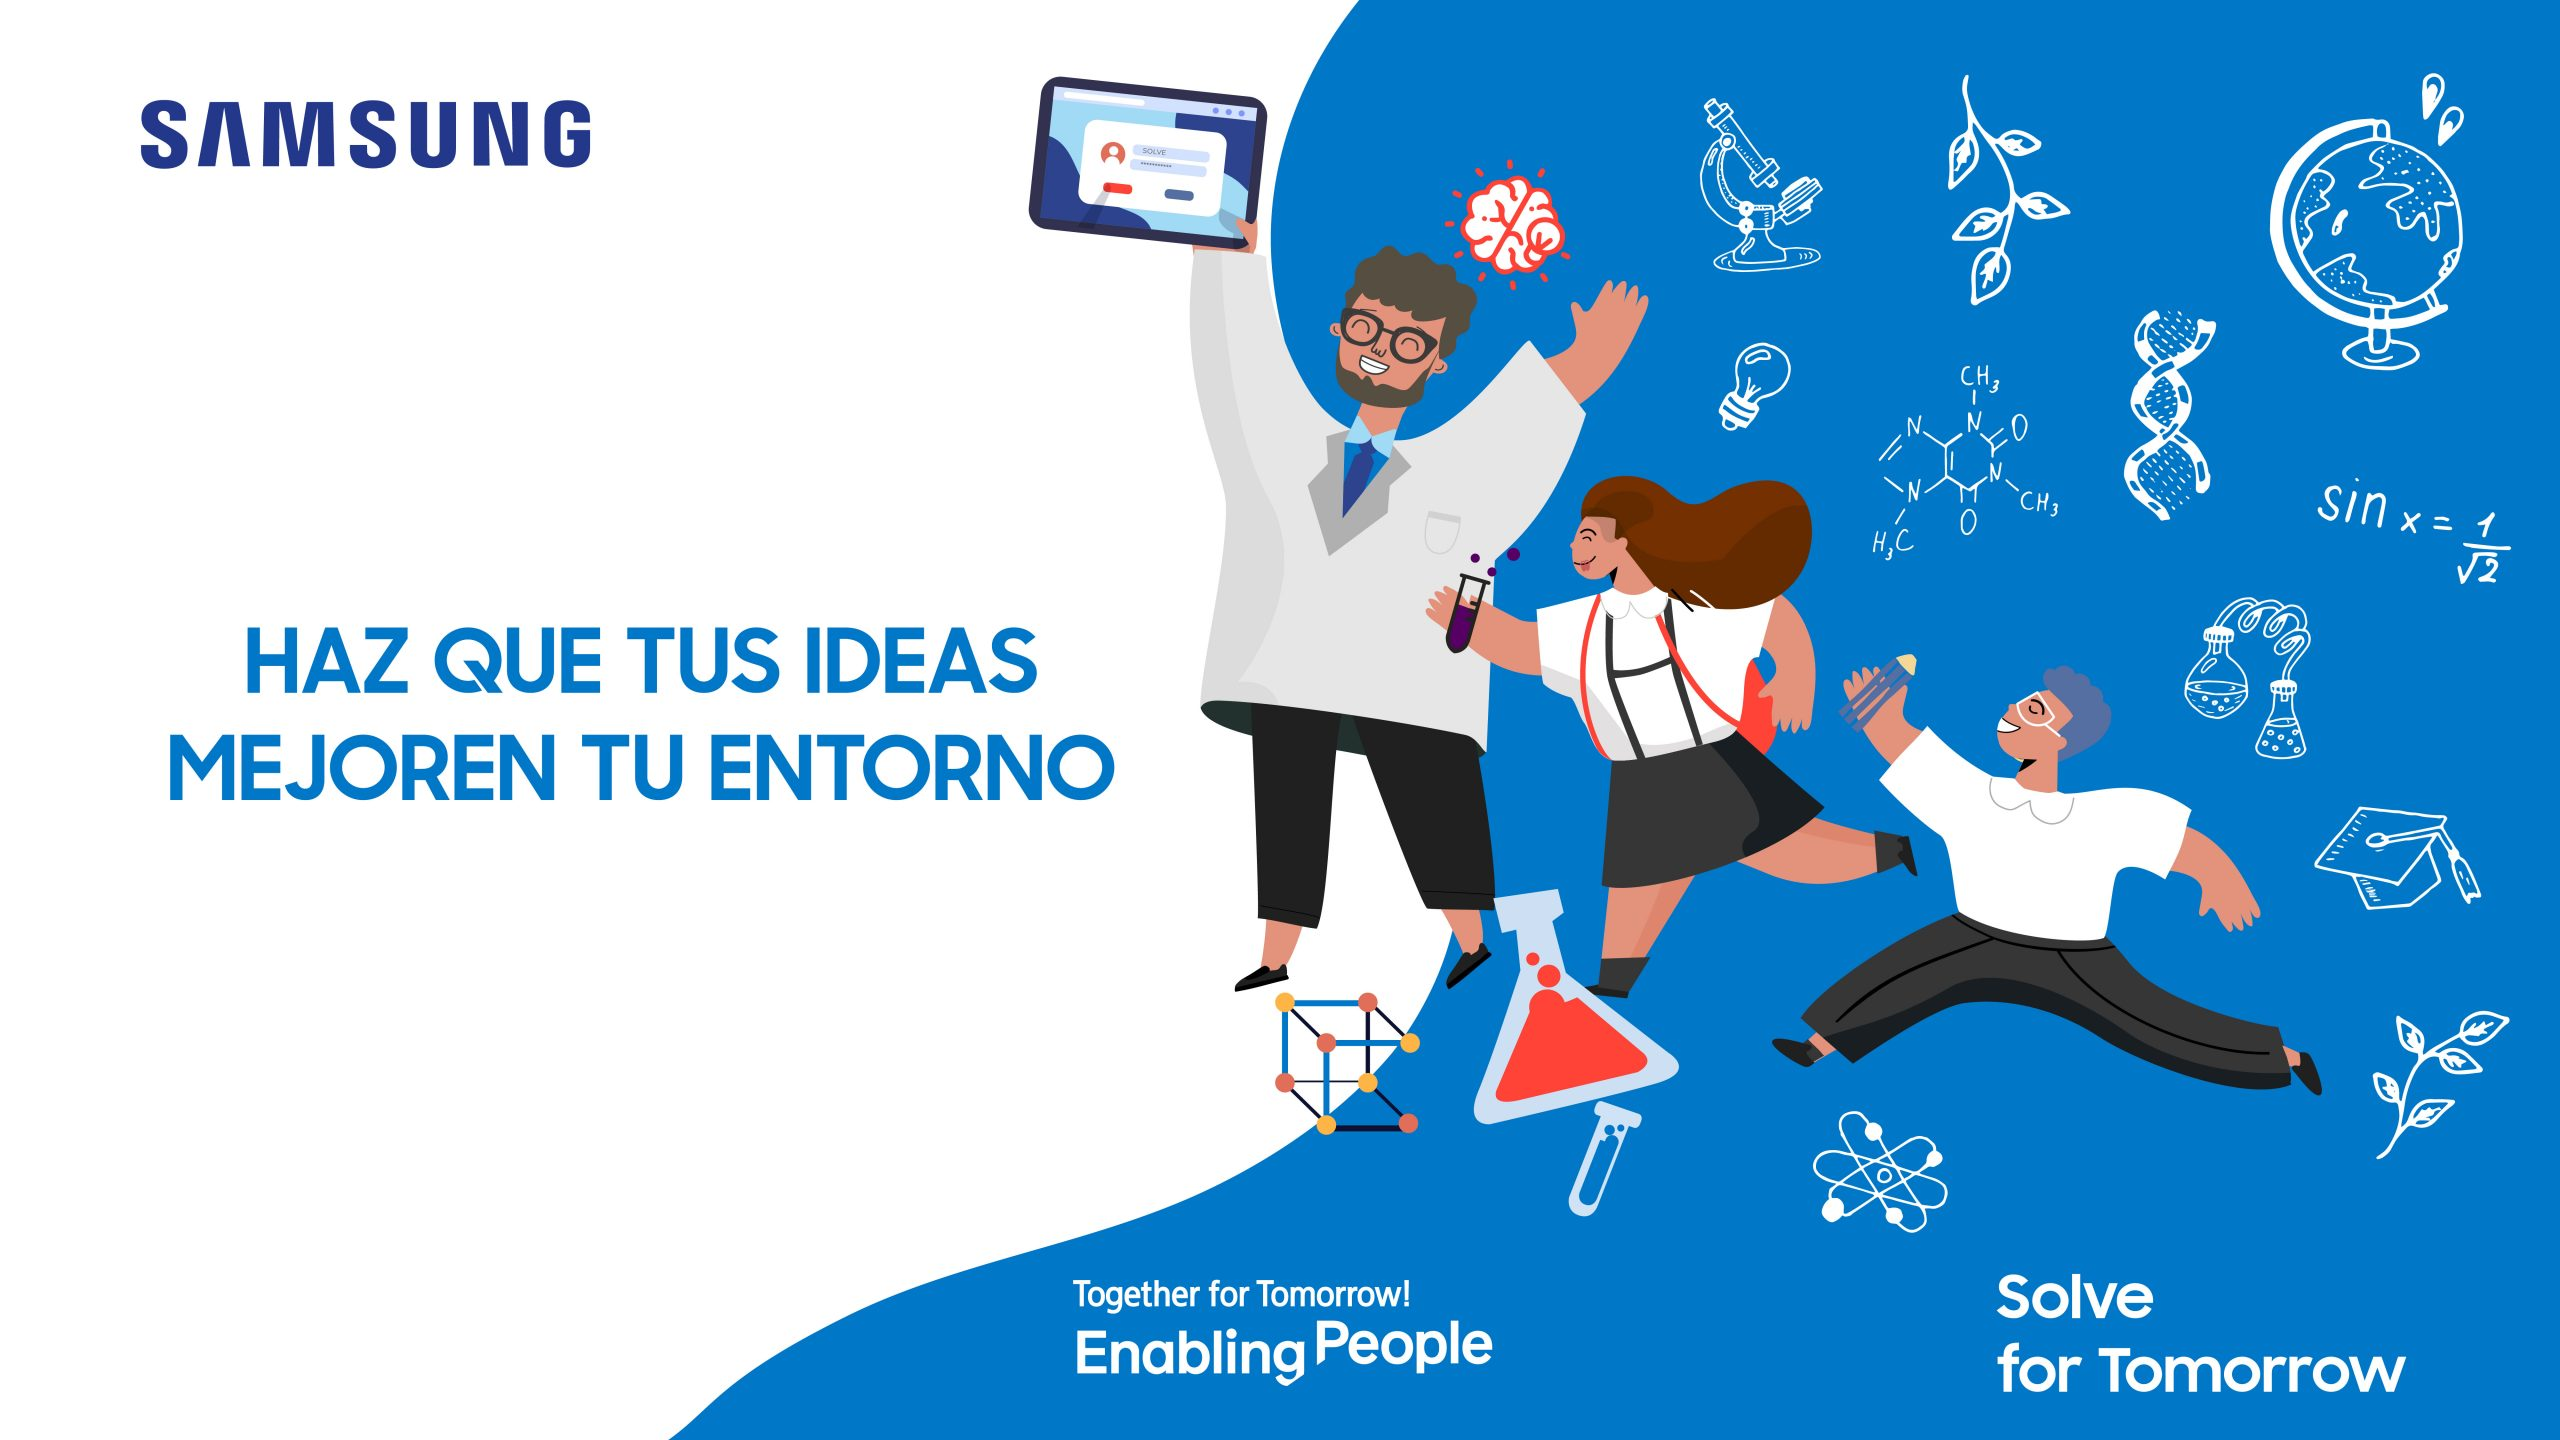 More than 4 thousand students from Peru participated in creative projects in the field of science and technology in the competition Samsung – Samsung Newsroom Peru